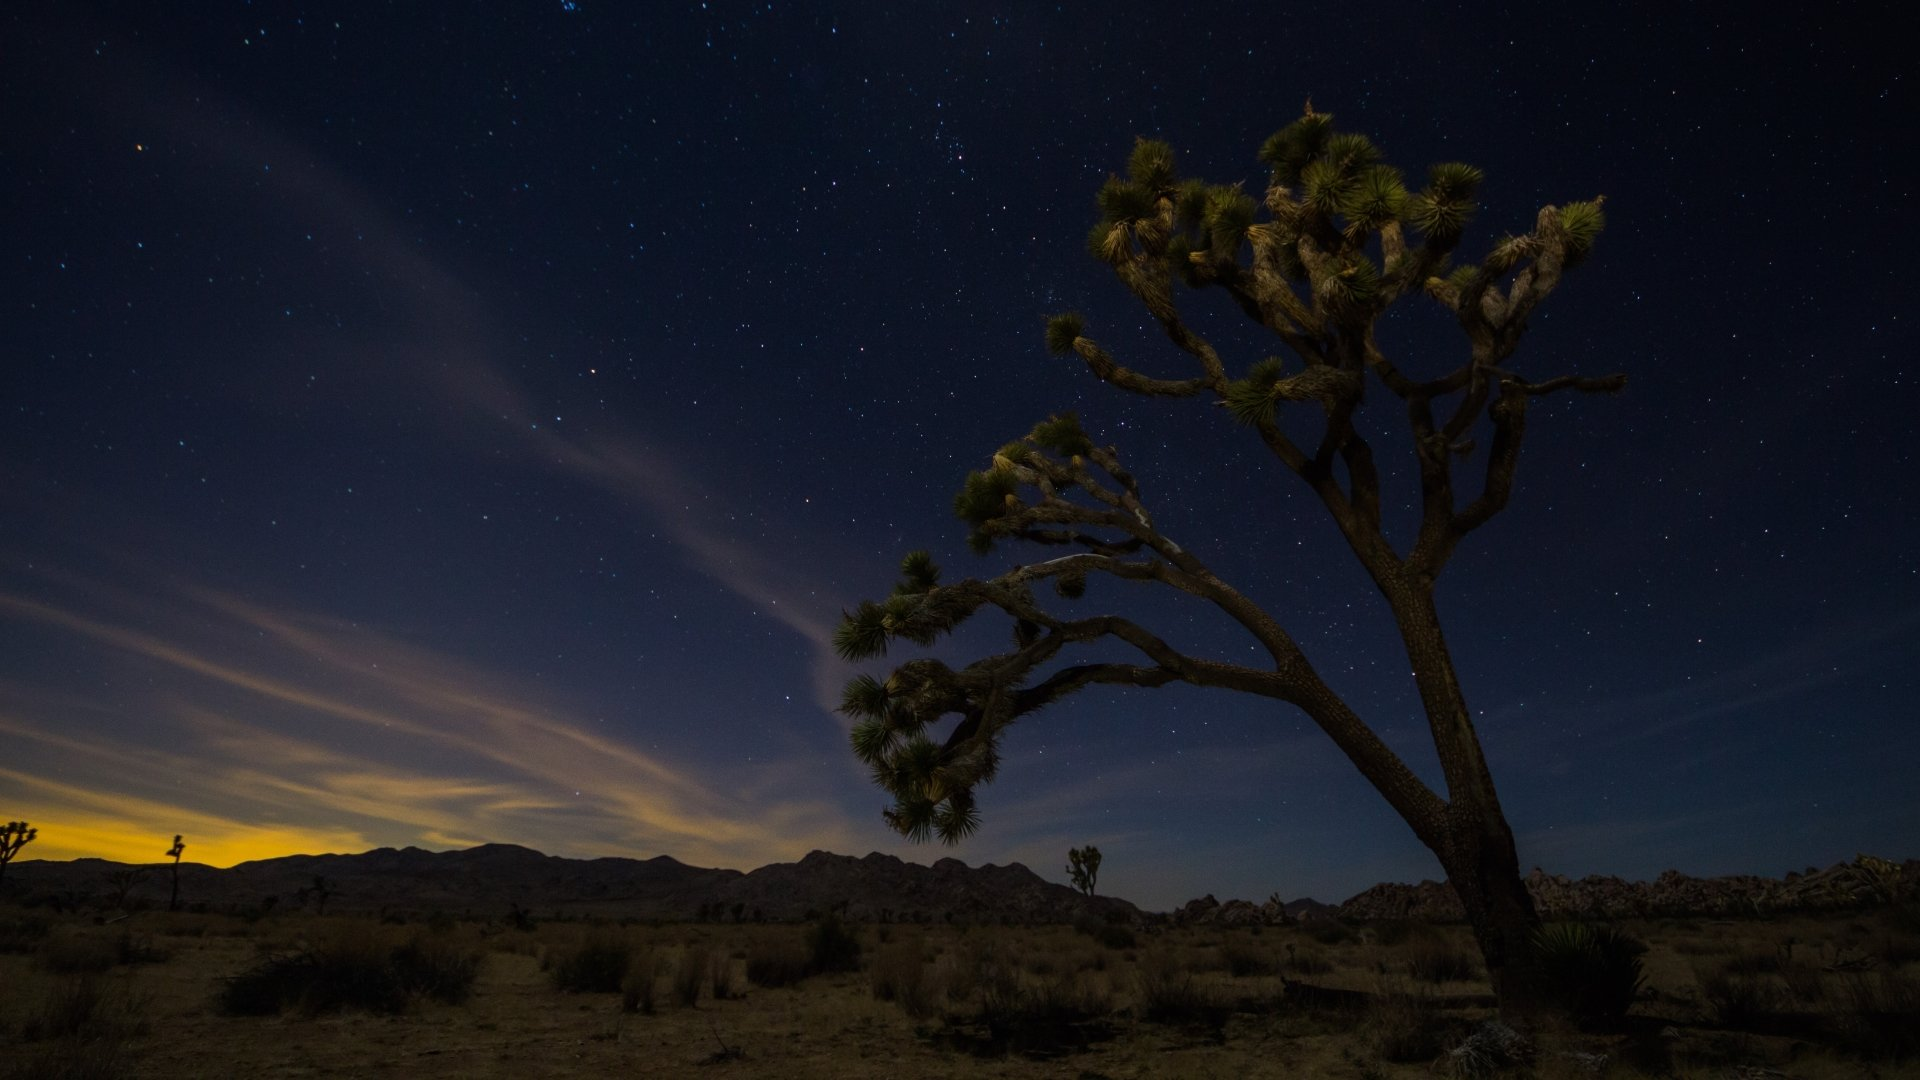 Download full hd 1080p Joshua Tree National Park PC background ID:254699 for free